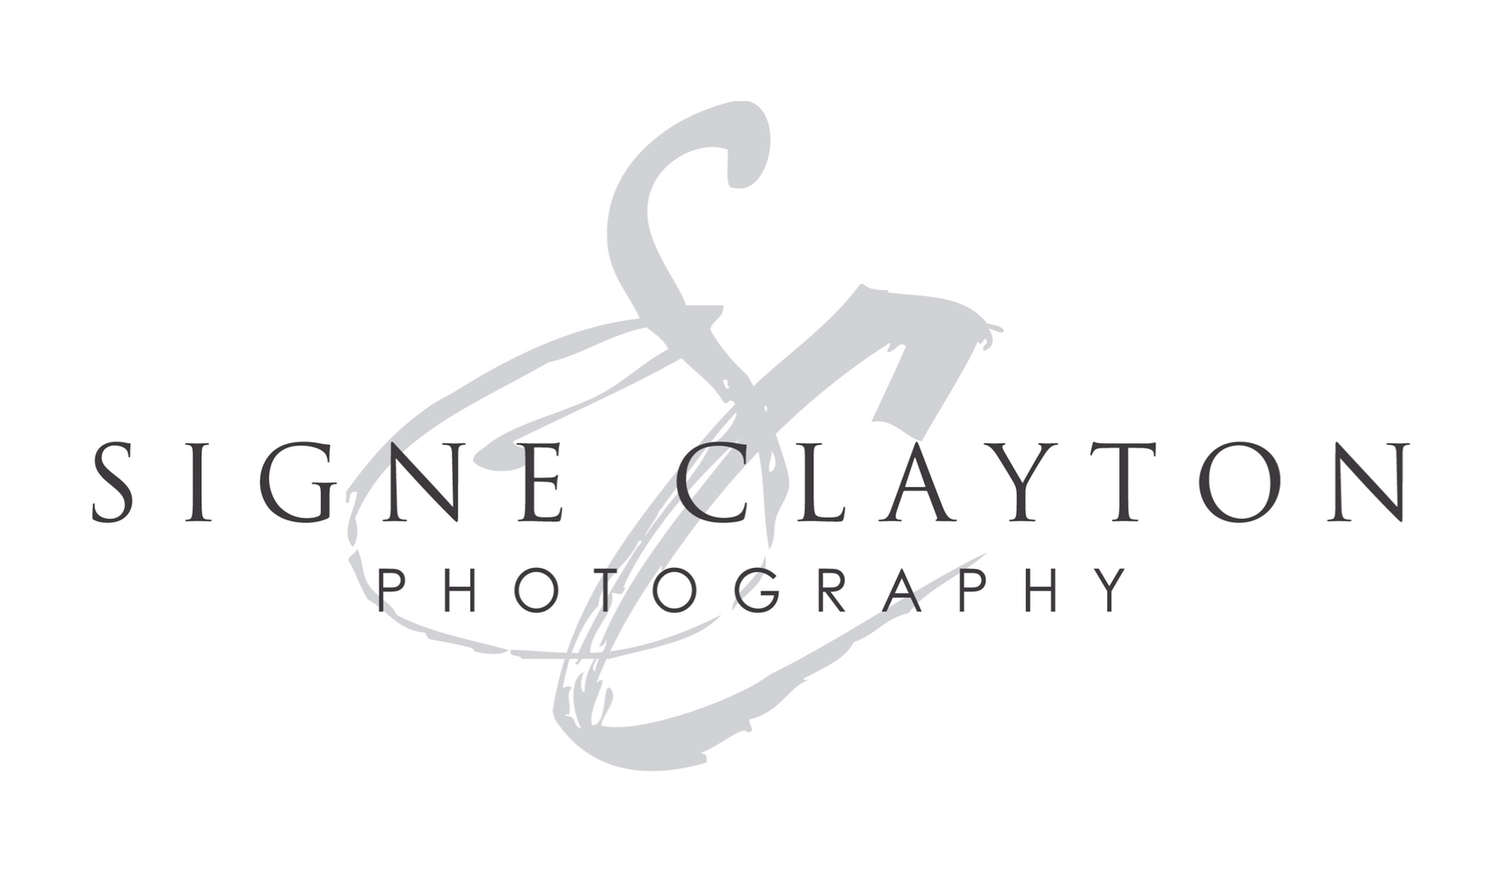 Signe Clayton Photography